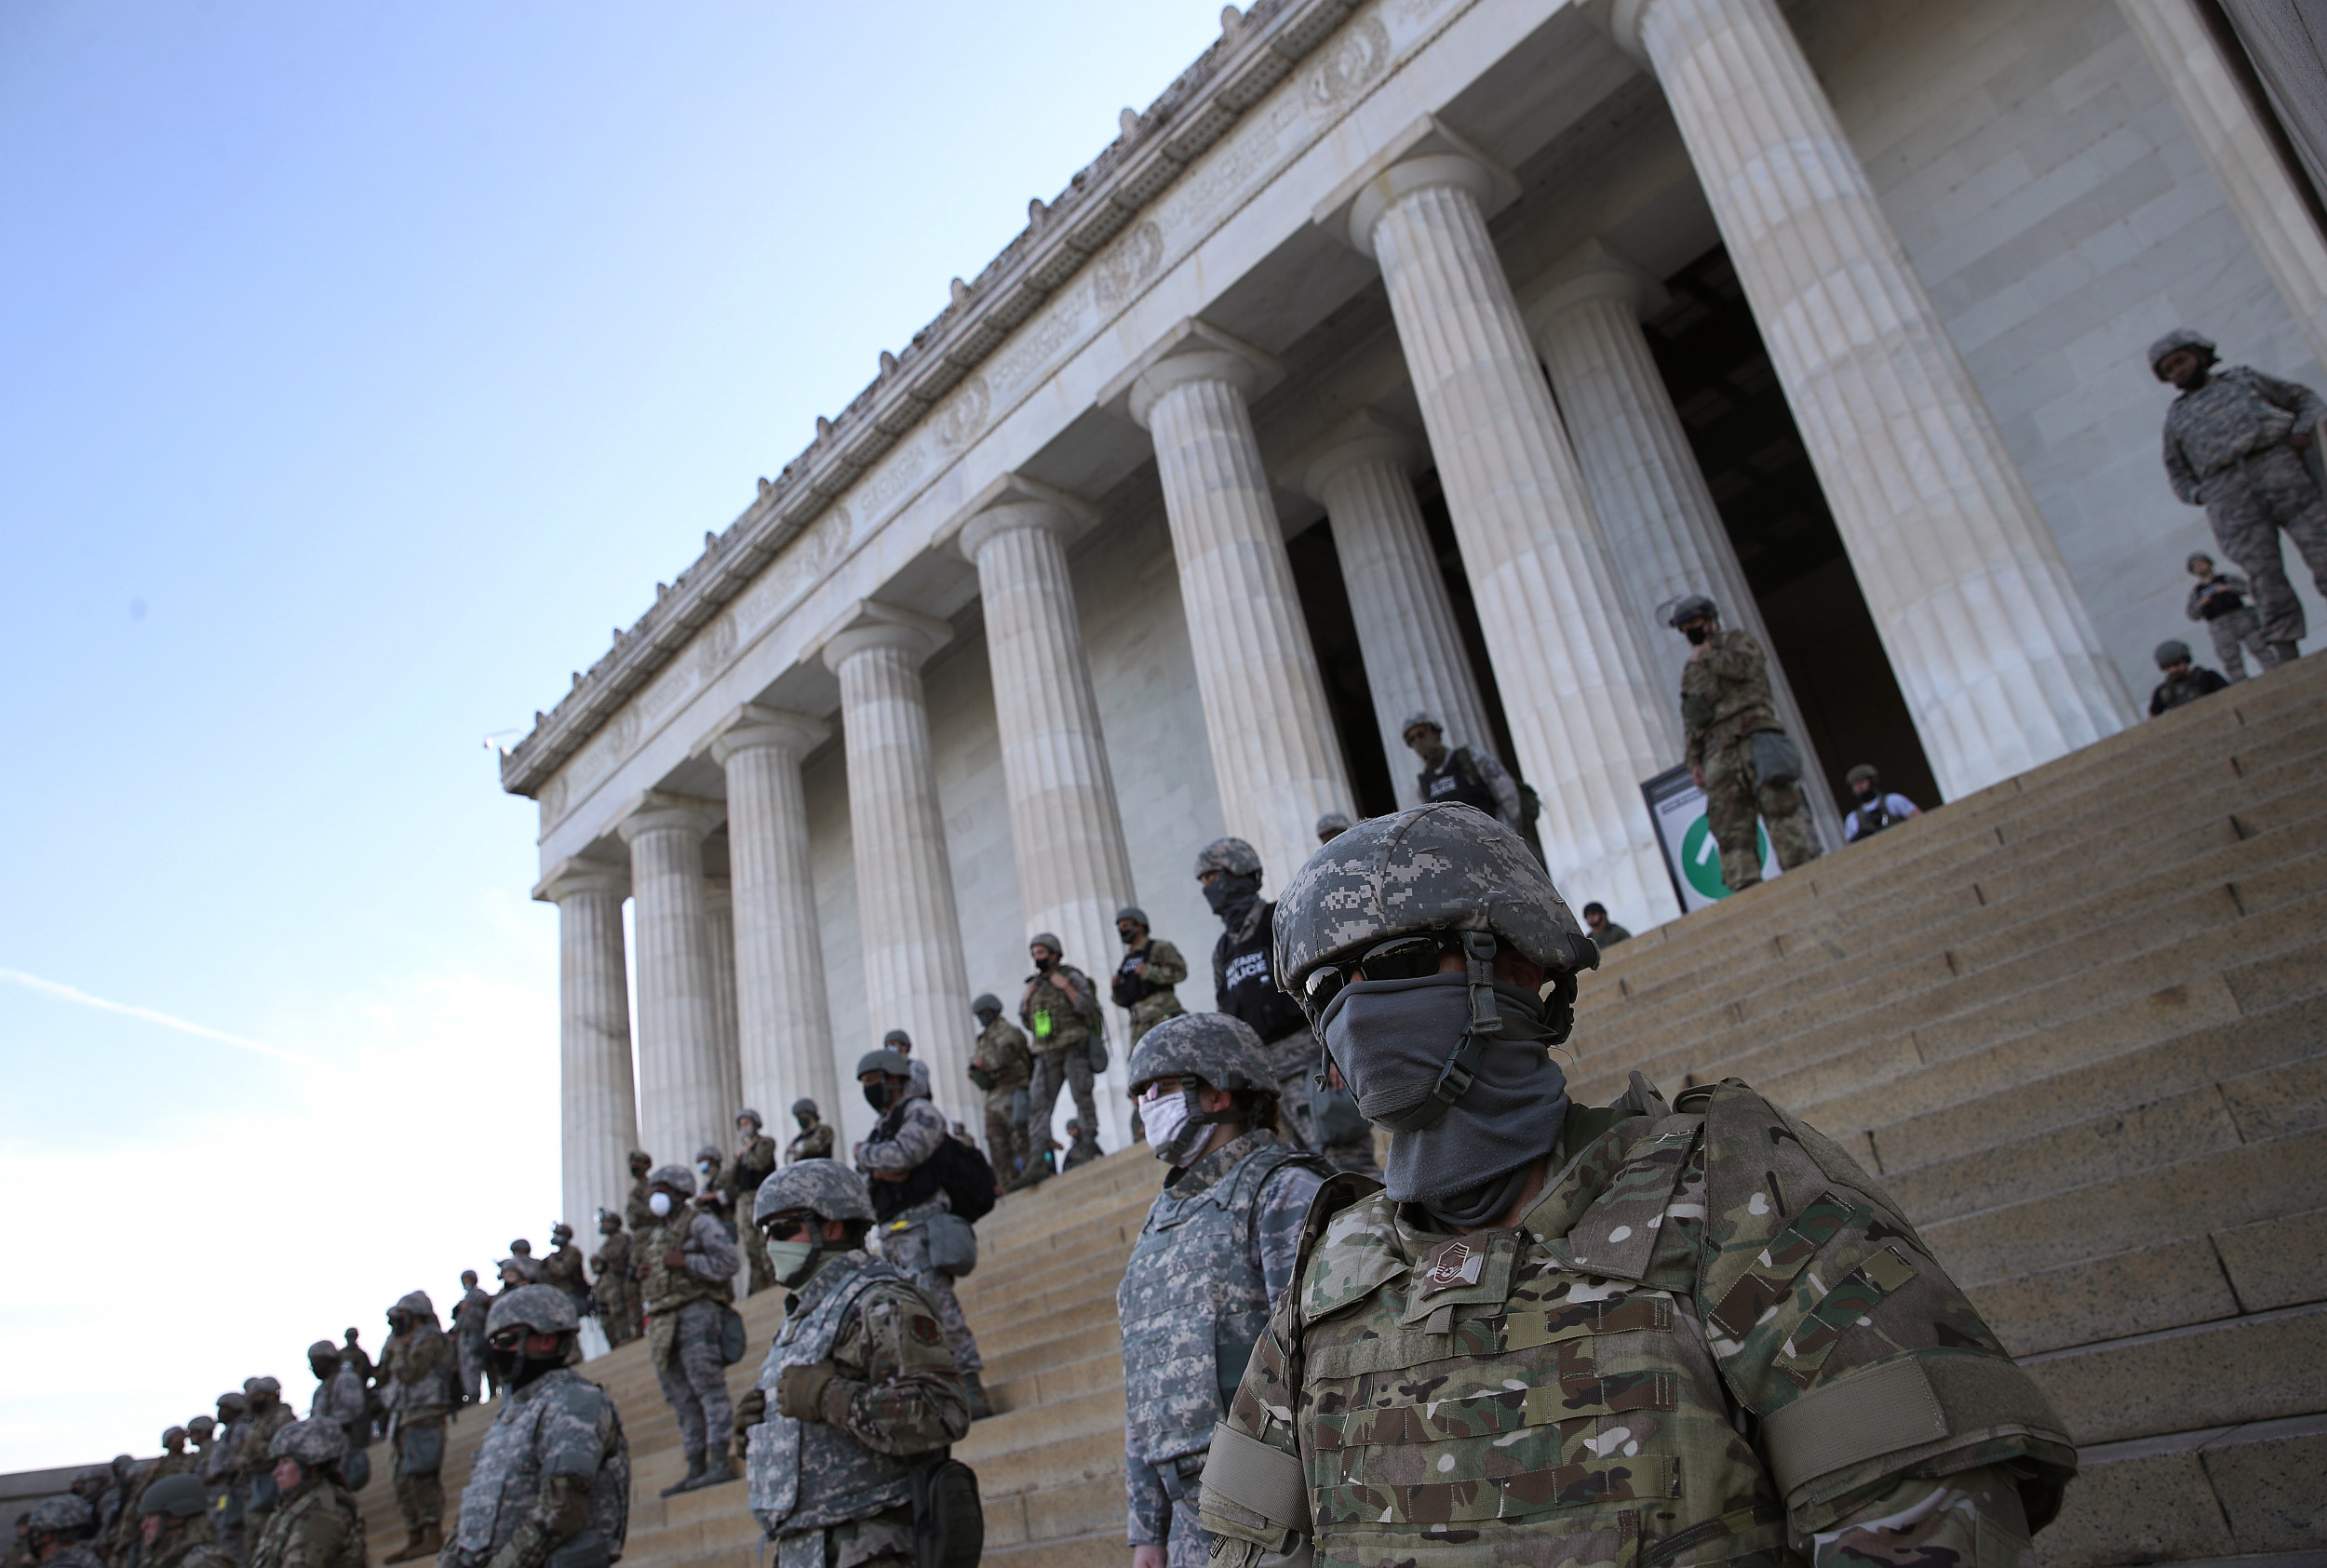 Viral photo shows soldiers amassed on steps of Lincoln Memorial after Pentagon puts them on alert over protests